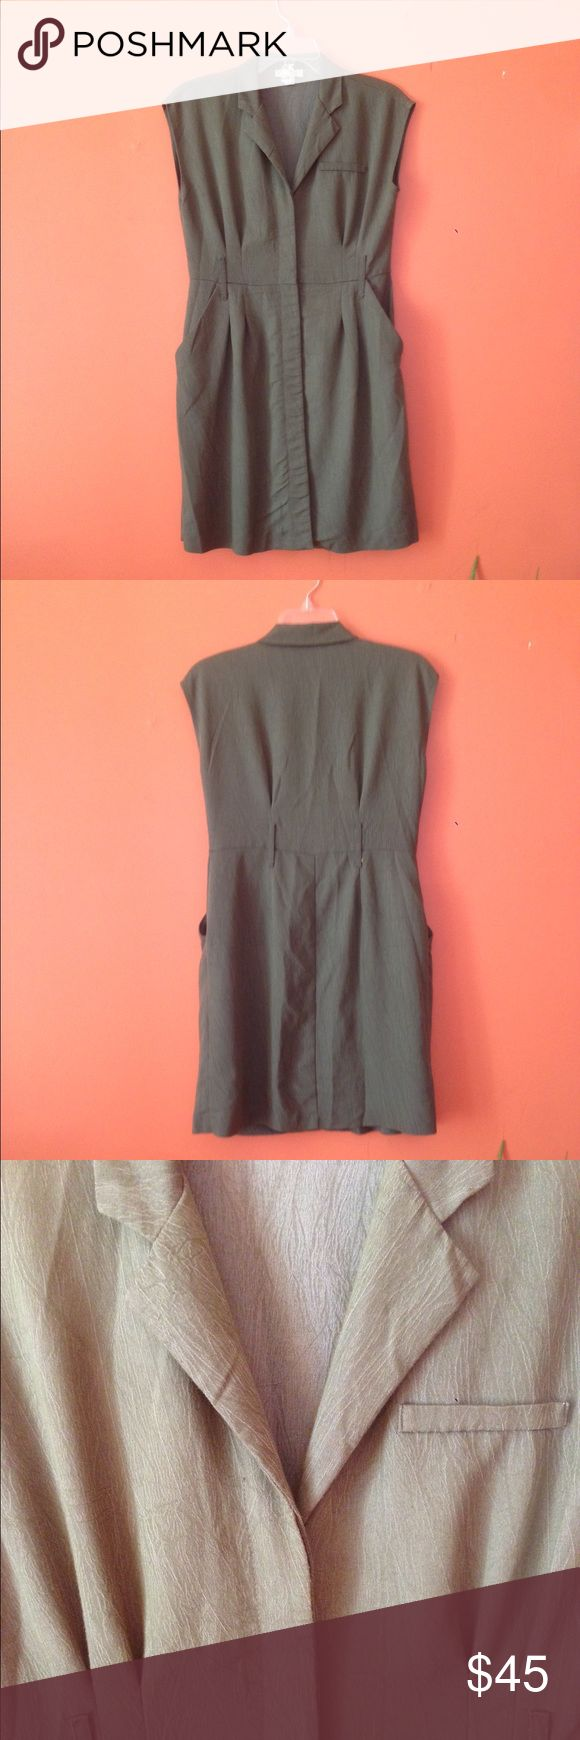 Vintage // Olive Button Up Dress Super cute small cap sleeve button up dress. Would keep but it is a little small on me. Nice muted olive green color. Dresses